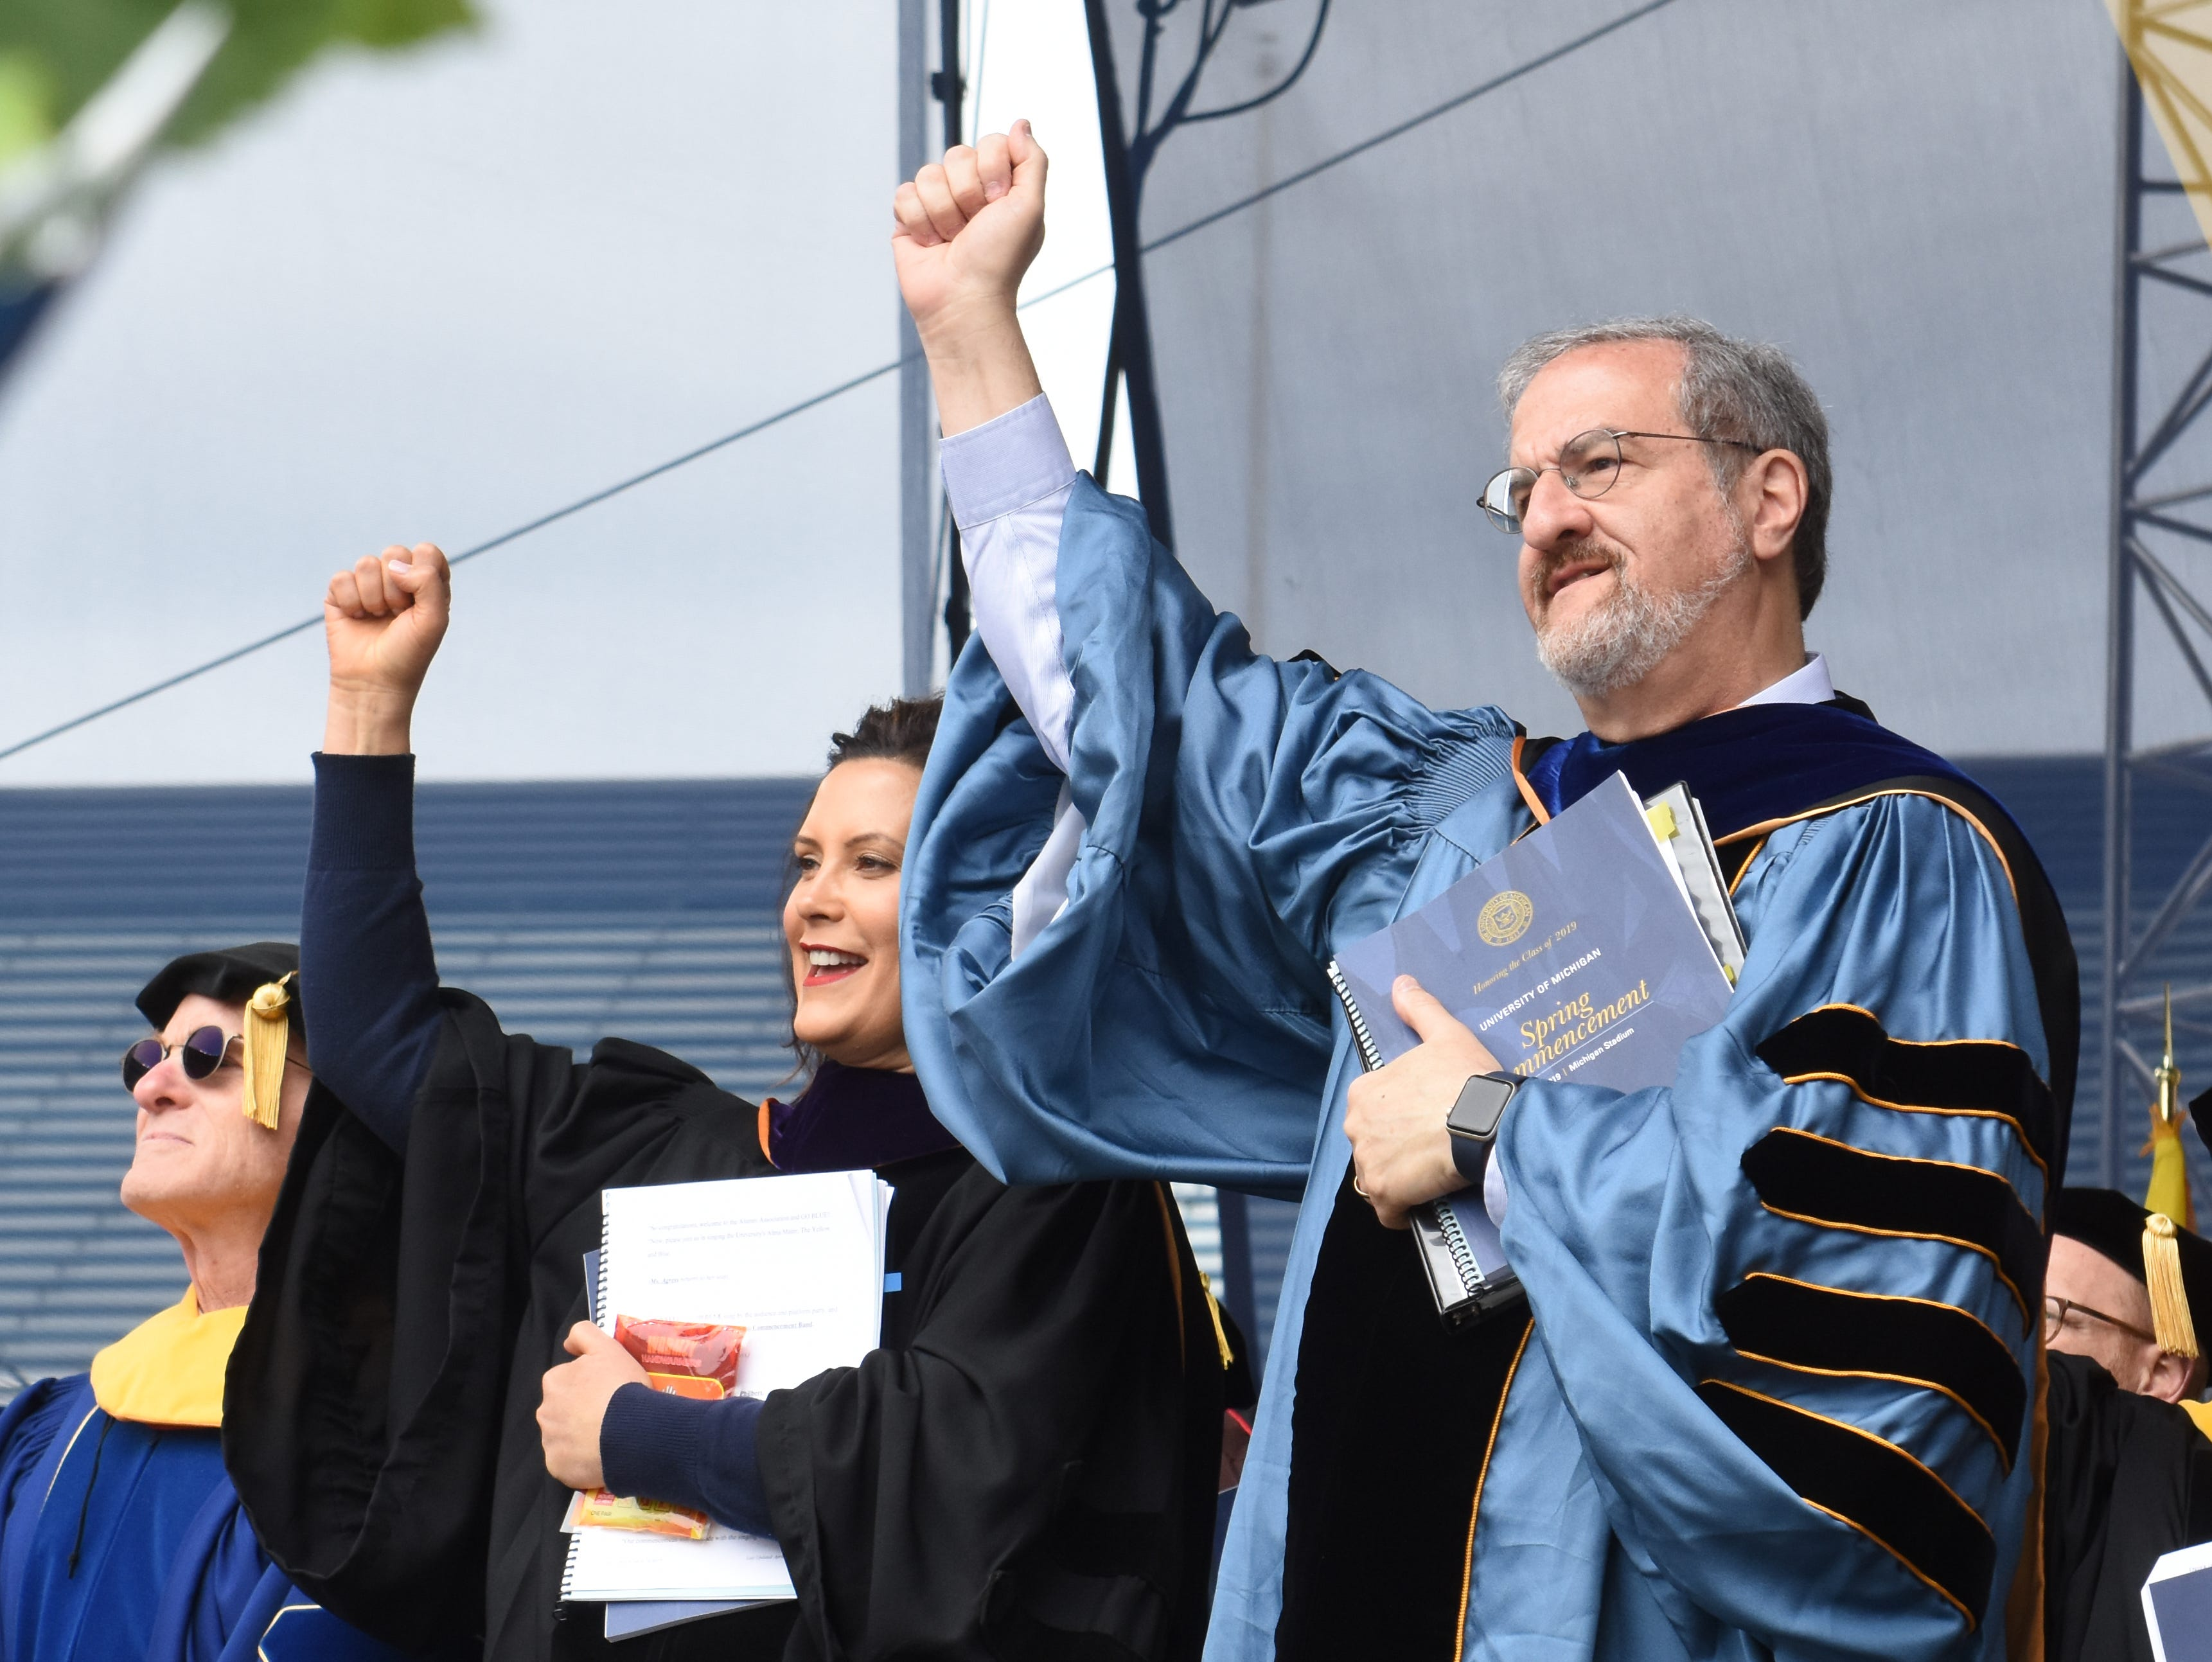 University of Michigan's President Mark Schlissel and Governor Gretchen Whitmer cheer to the UM fight song.